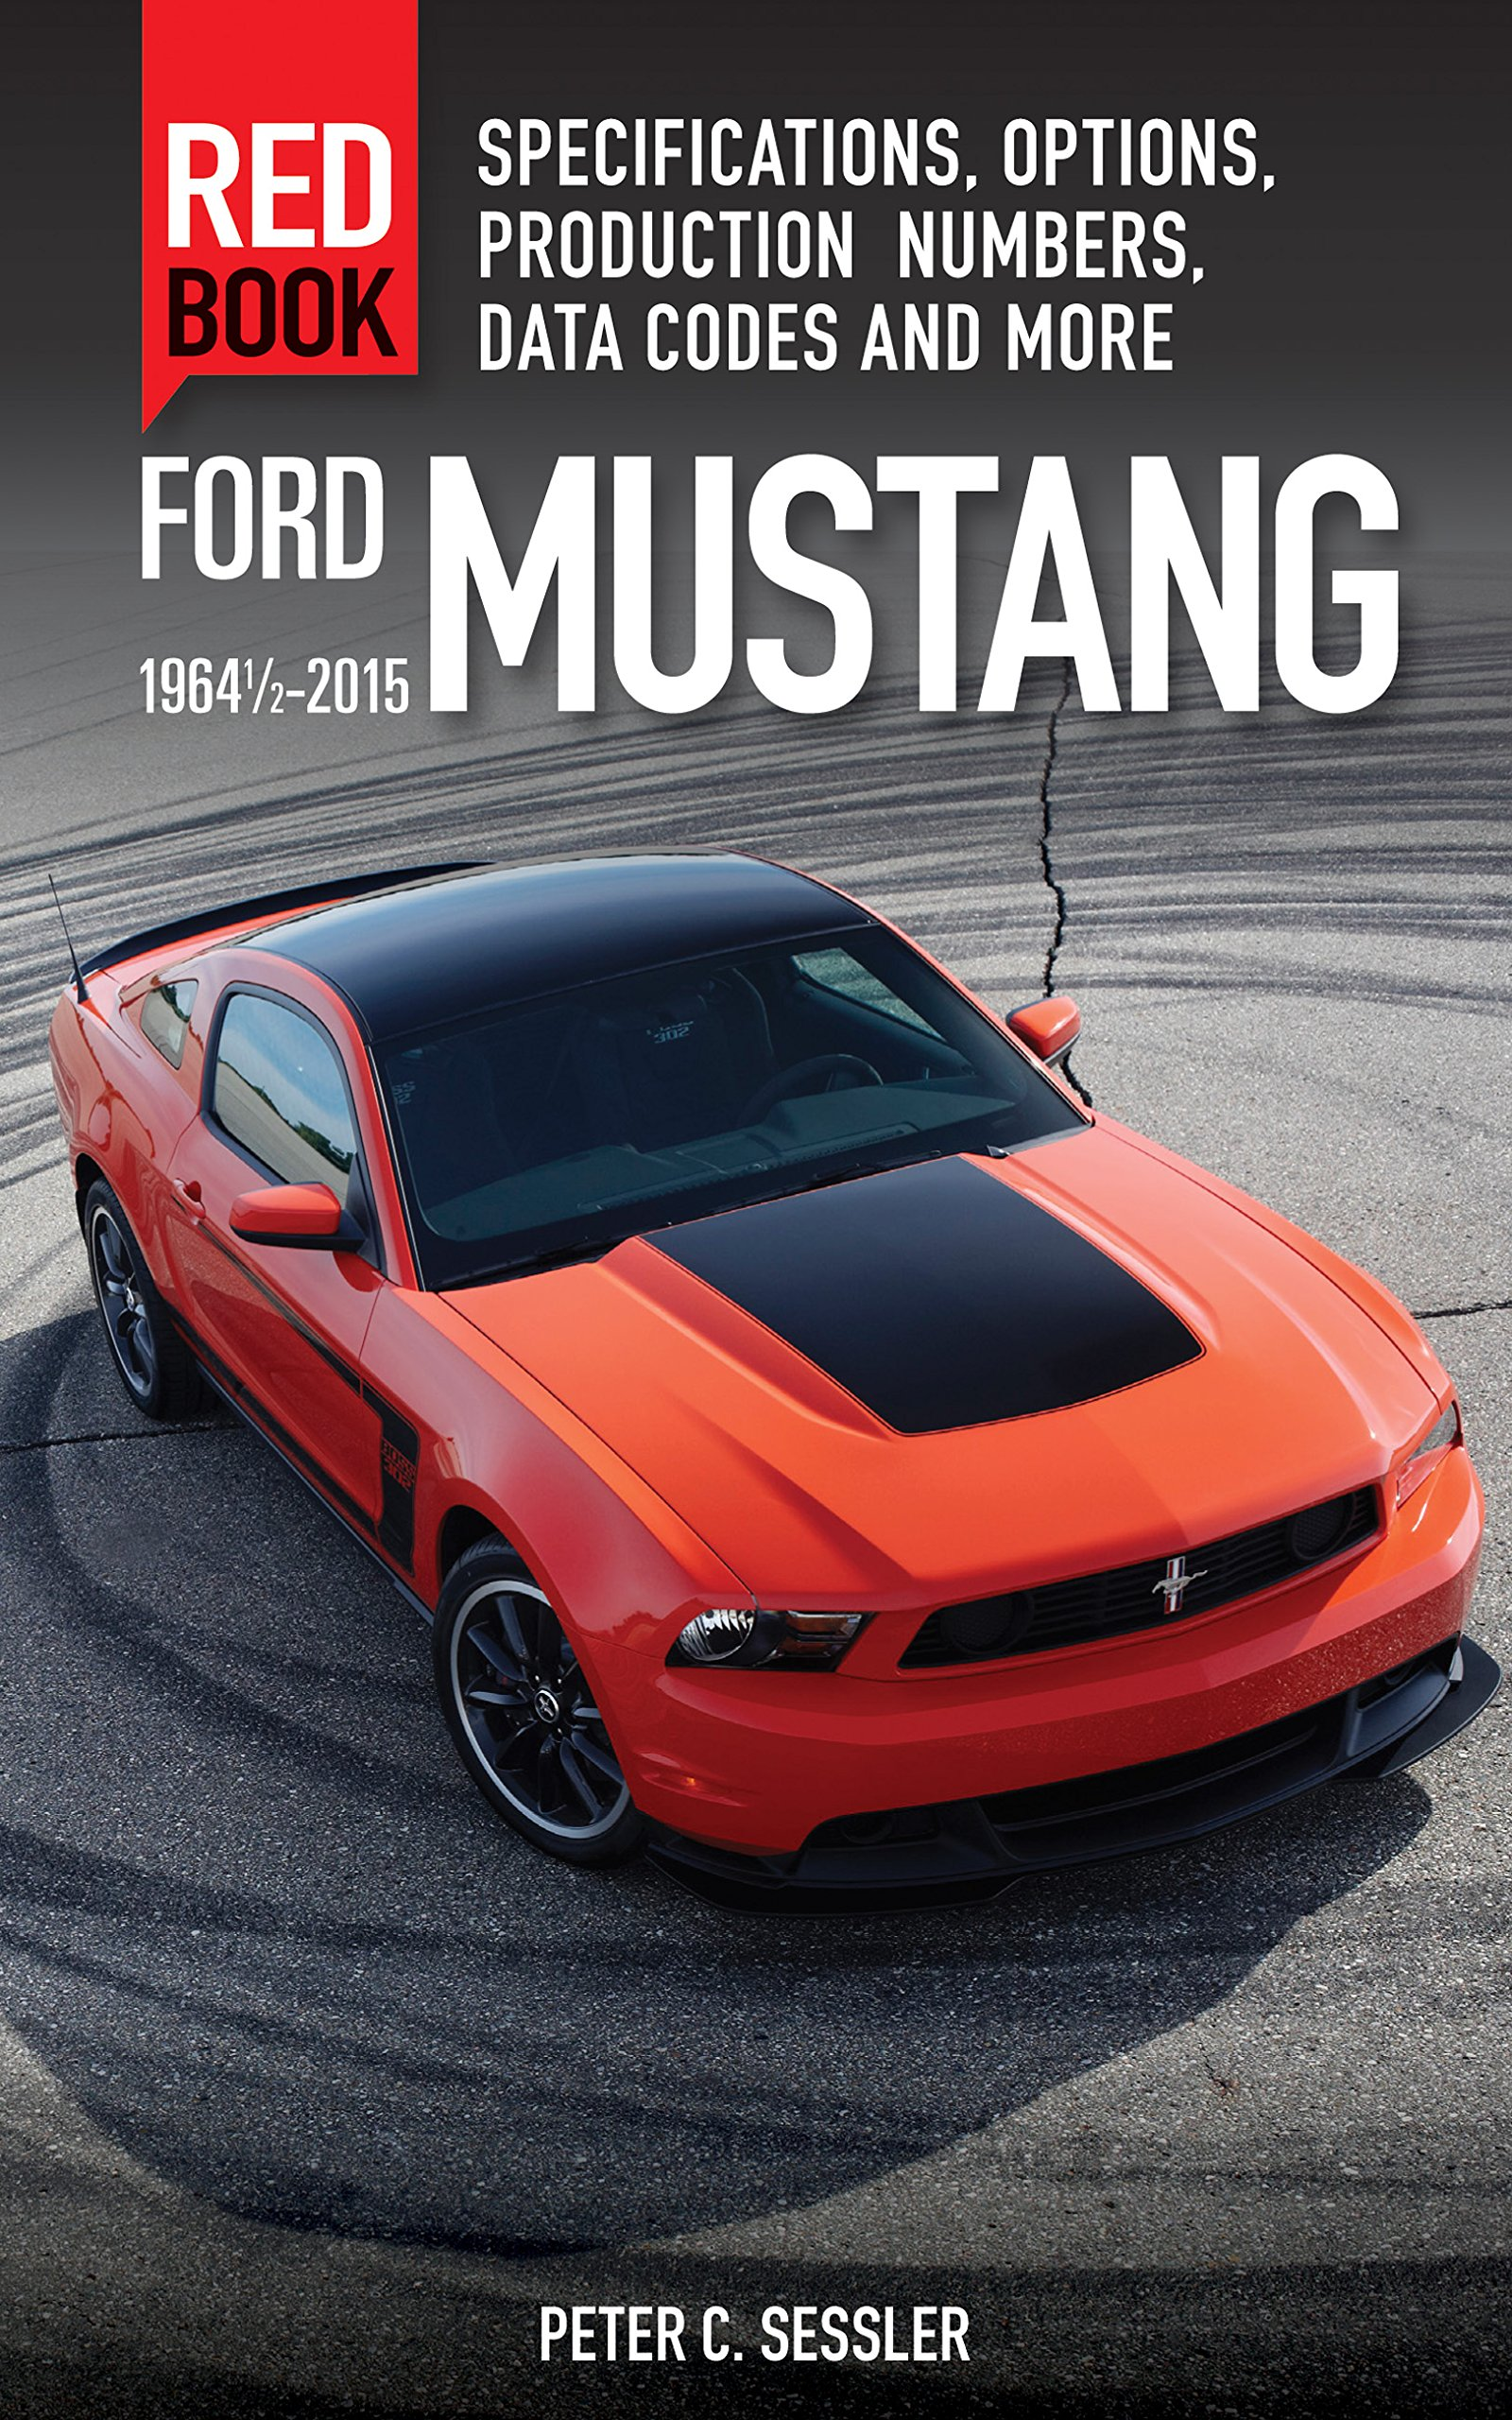 Redbook Used Car Best Of ford Mustang Red Book 1964 1 2 2015 Specifications Options